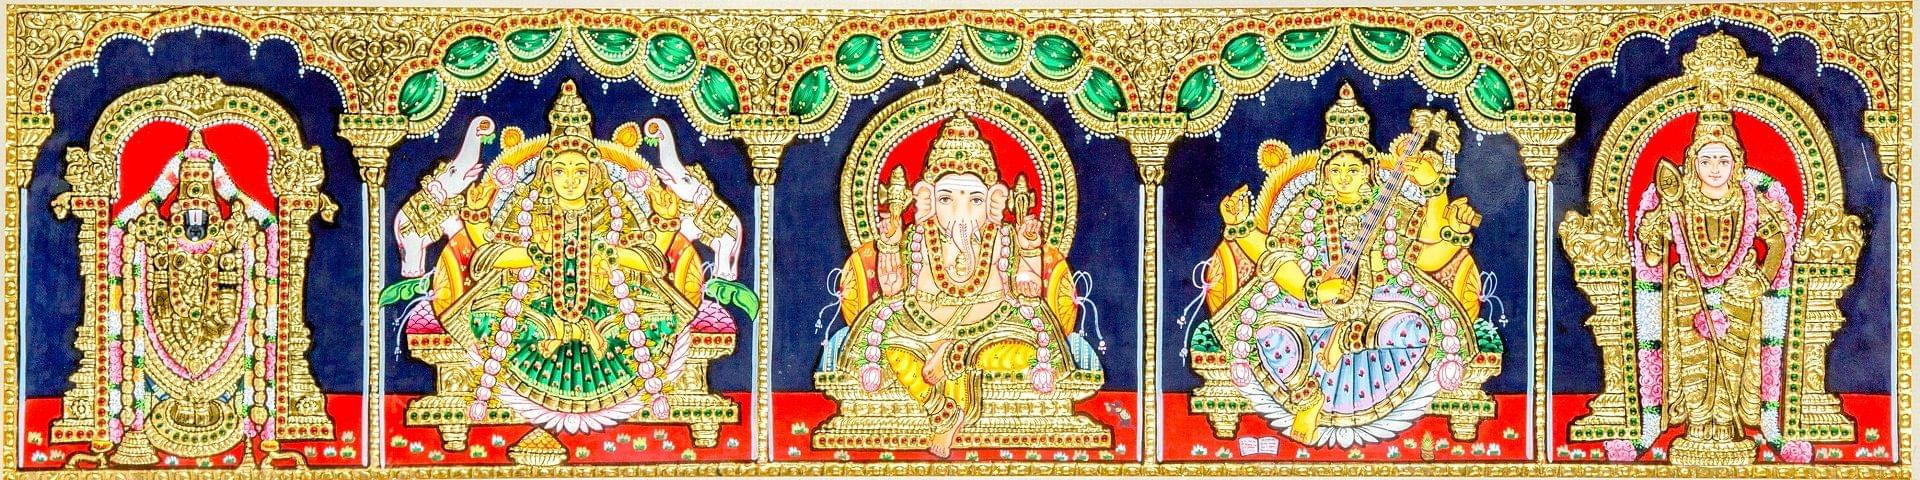 5 Gods Tanjore Painting